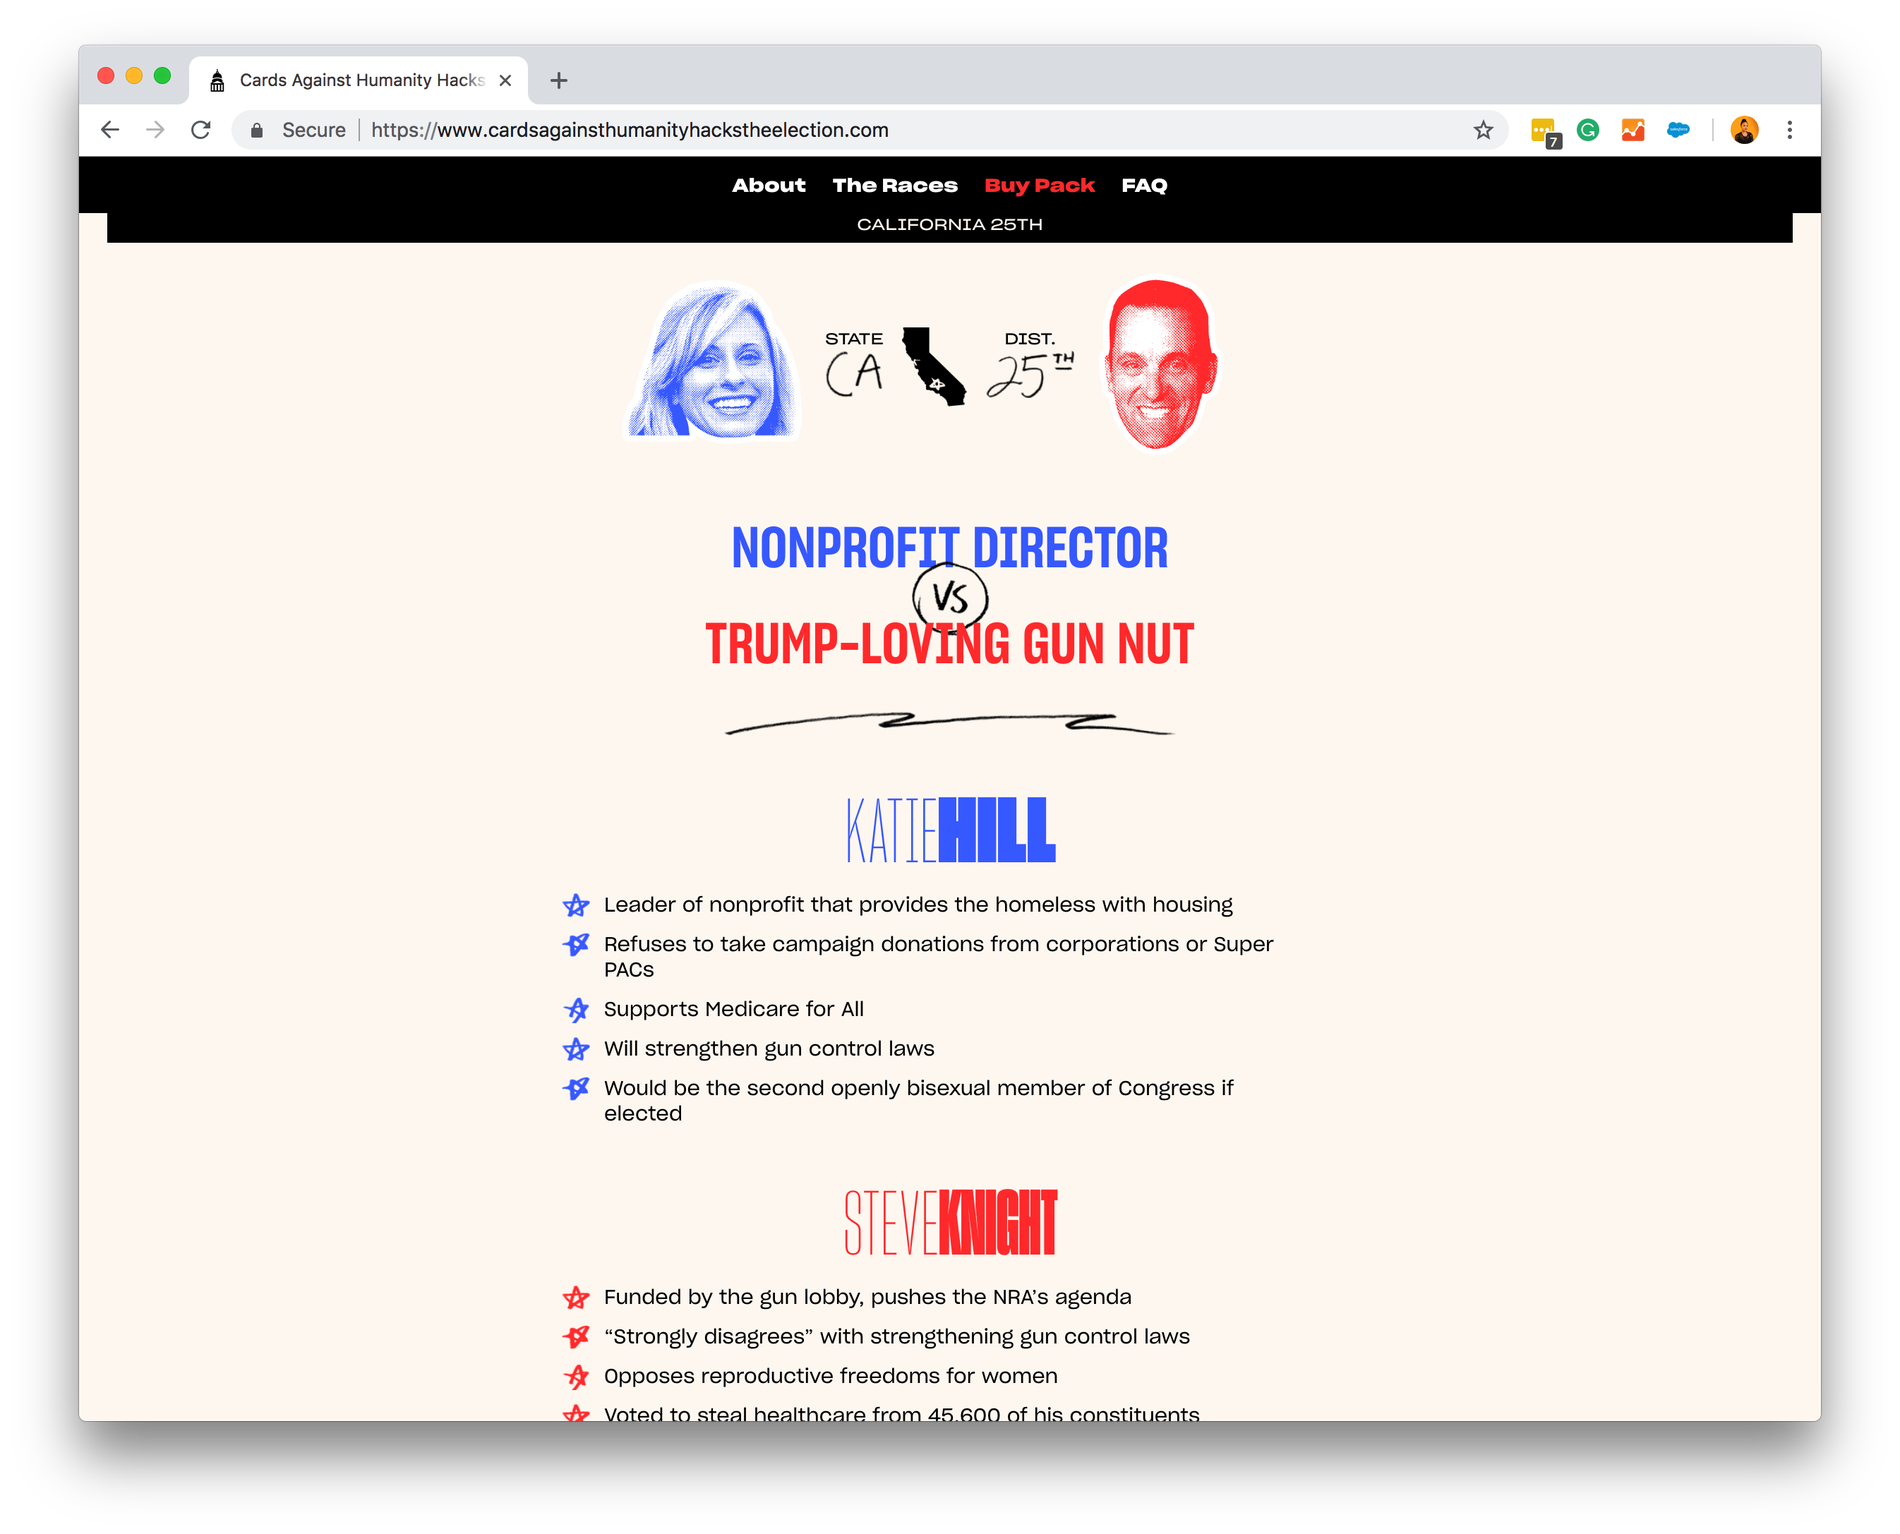 Sharp-Type-Cards-Against-Humanity-Hacks-Election-Web-CA-3